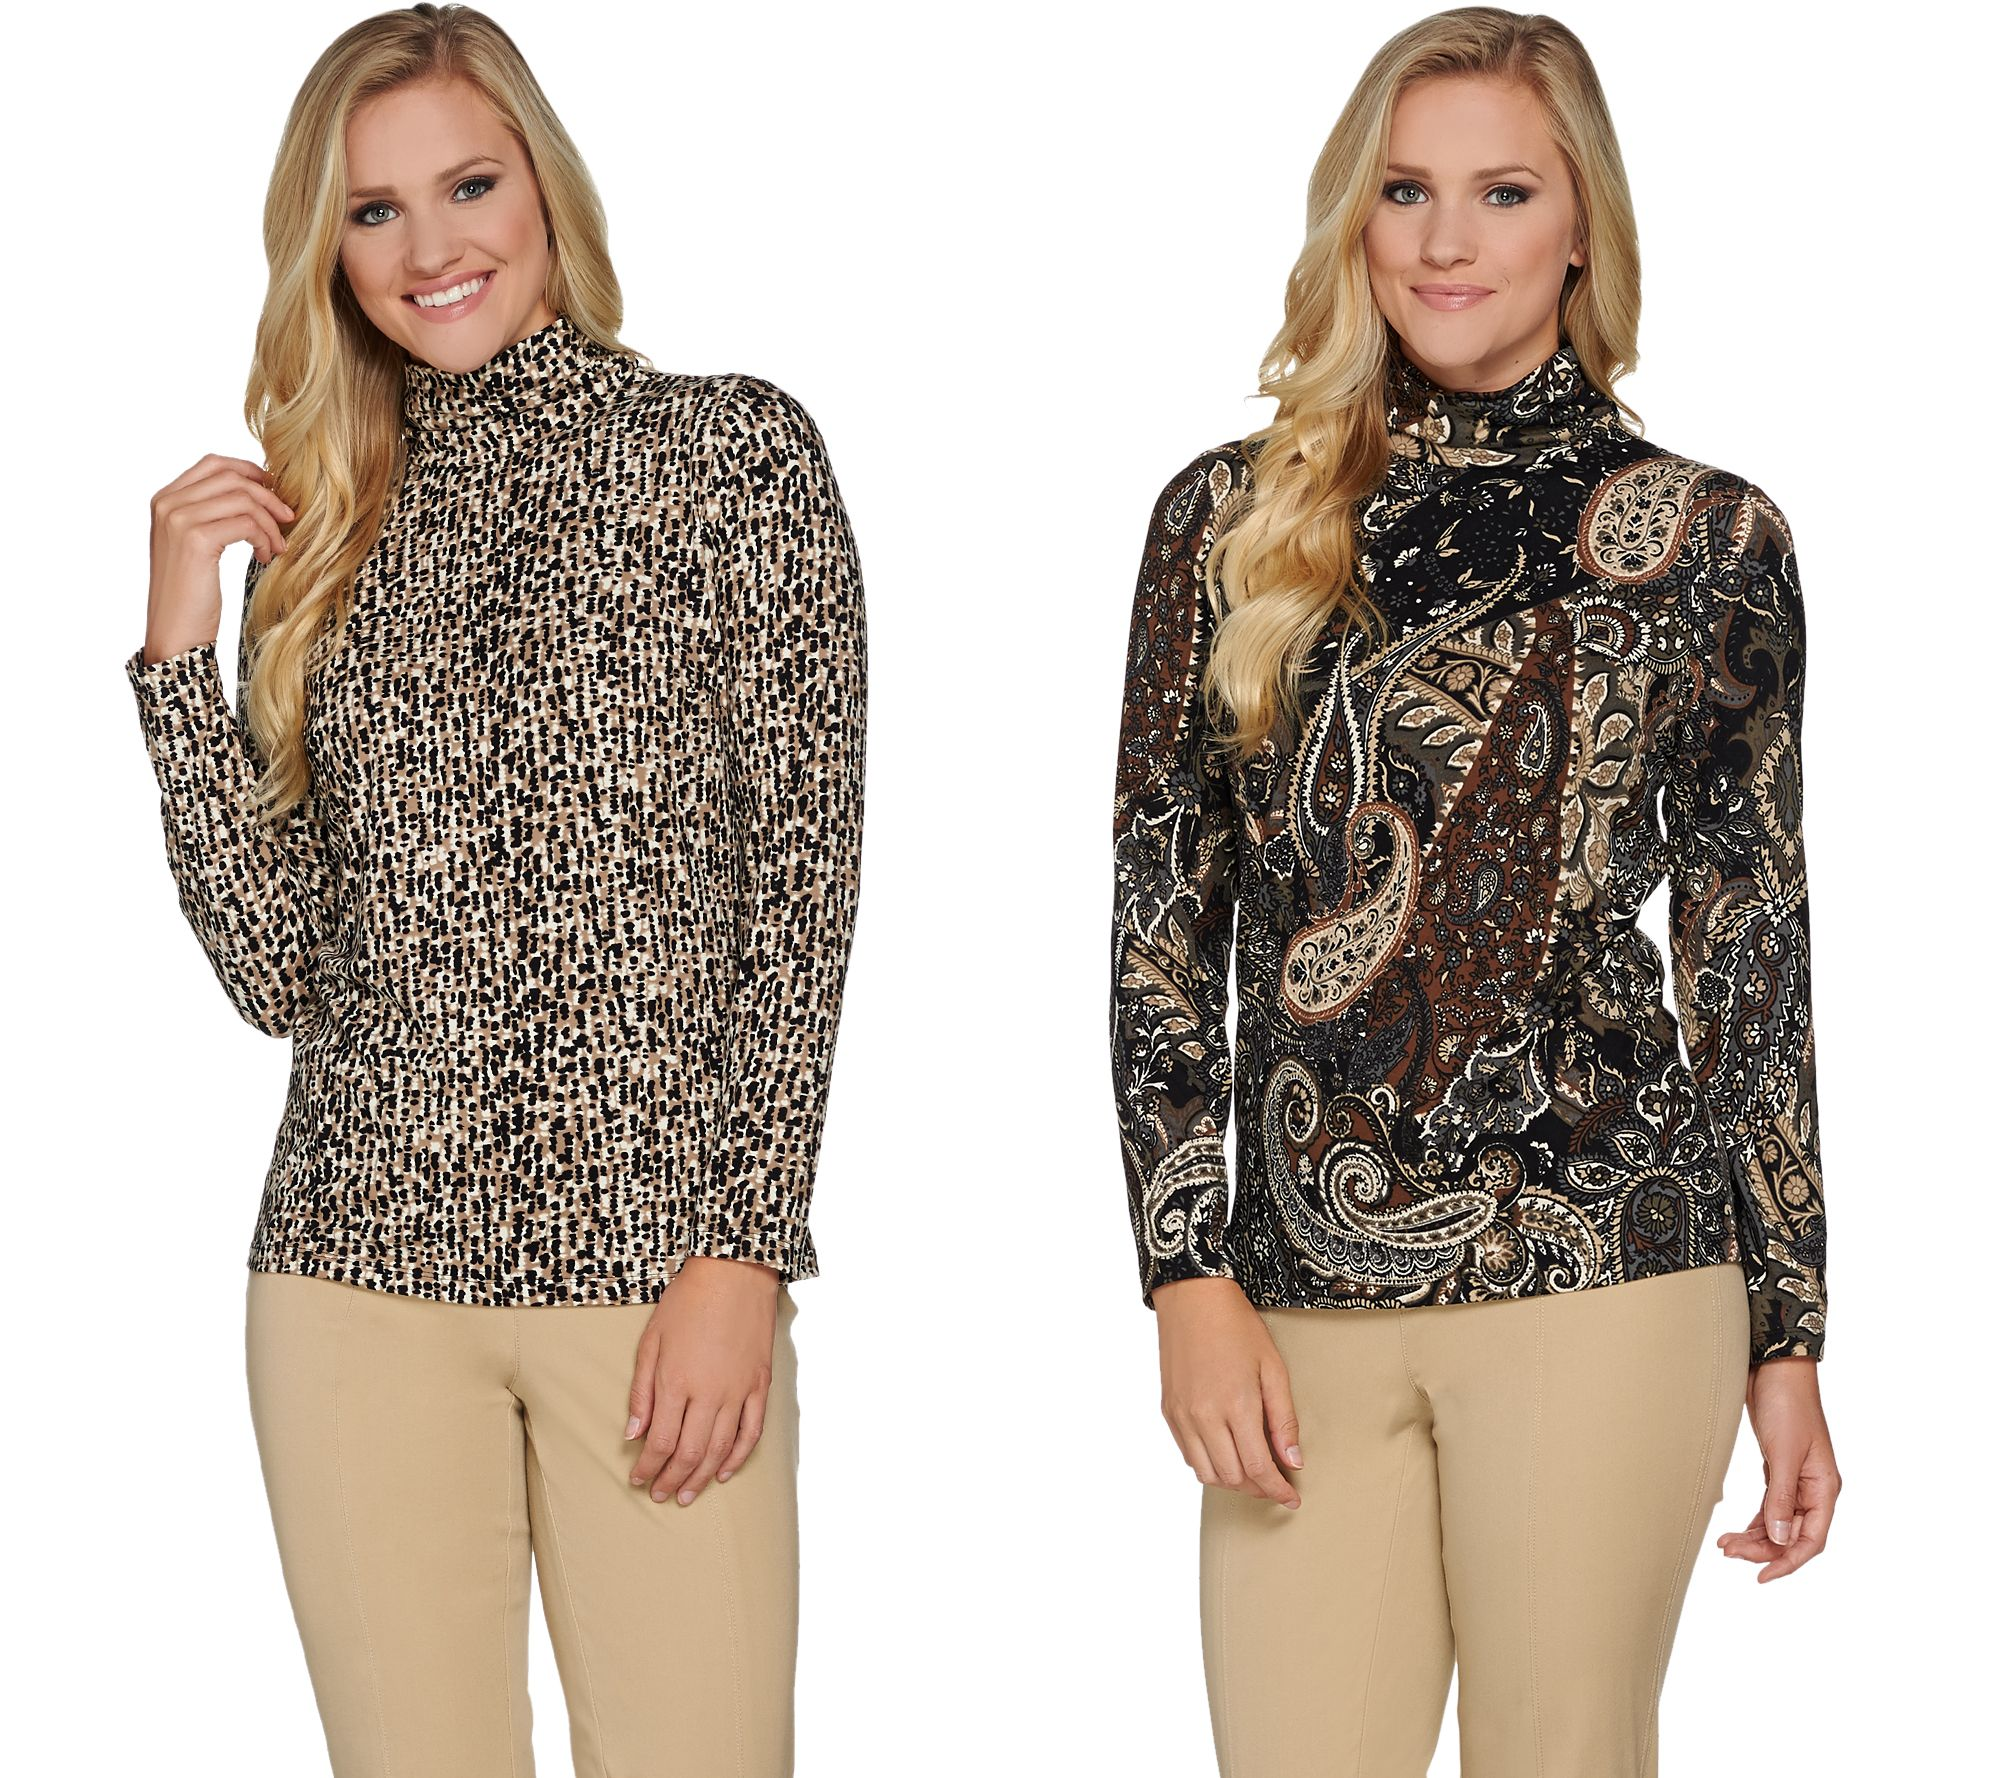 Qvc Susan Graver Tops Recently On Air Labzada Blouse